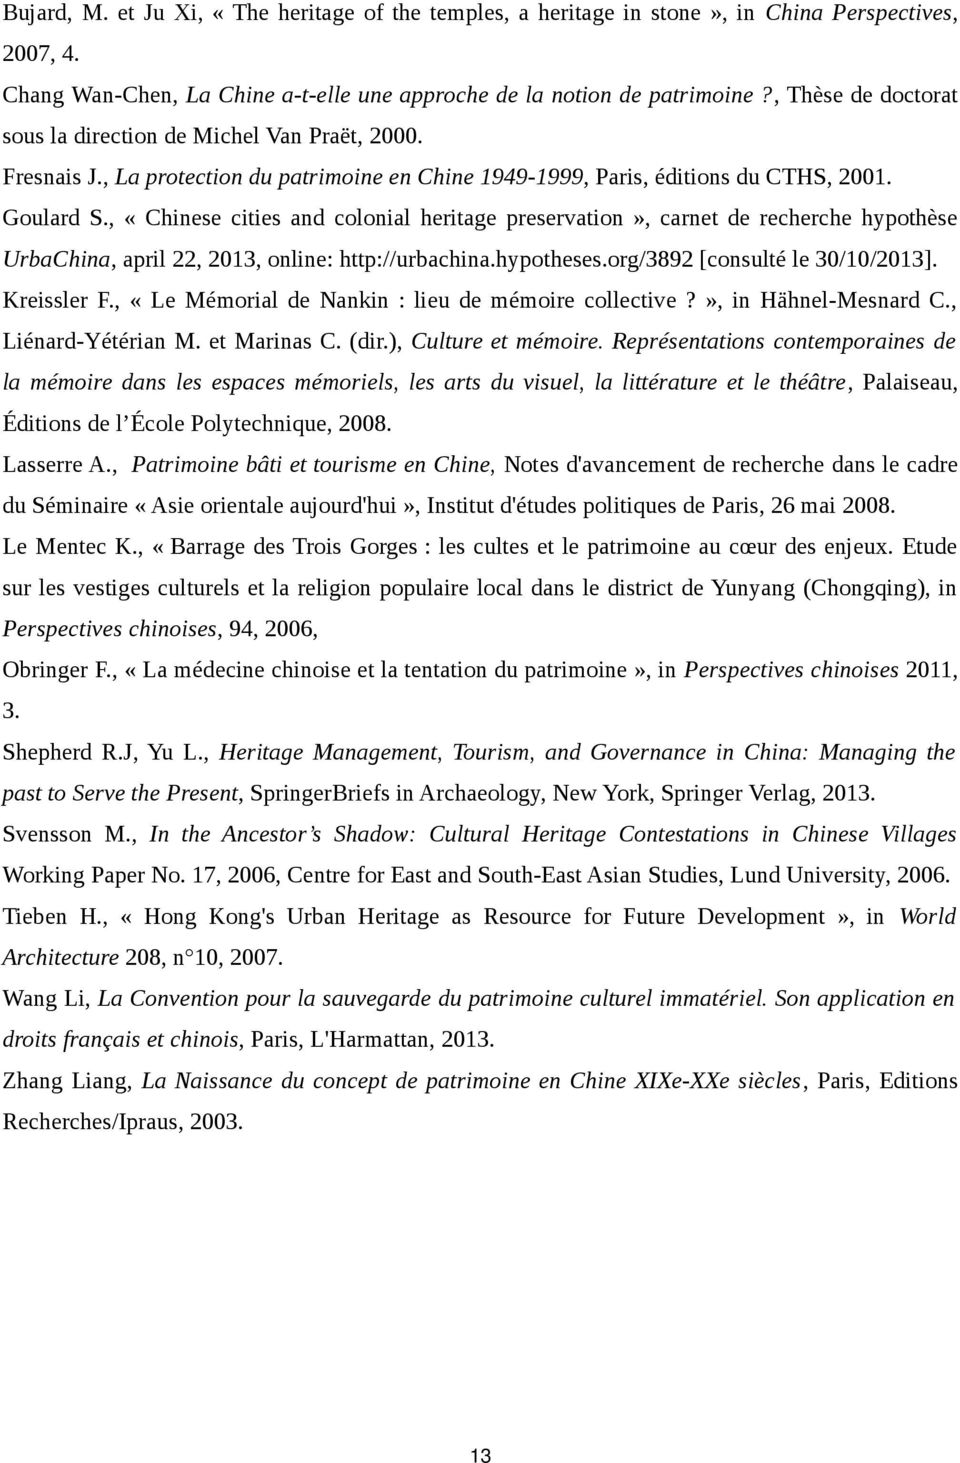 , «Chinese cities and colonial heritage preservation», carnet de recherche hypothèse UrbaChina, april 22, 2013, online: http://urbachina.hypotheses.org/3892 [consulté le 30/10/2013]. Kreissler F.